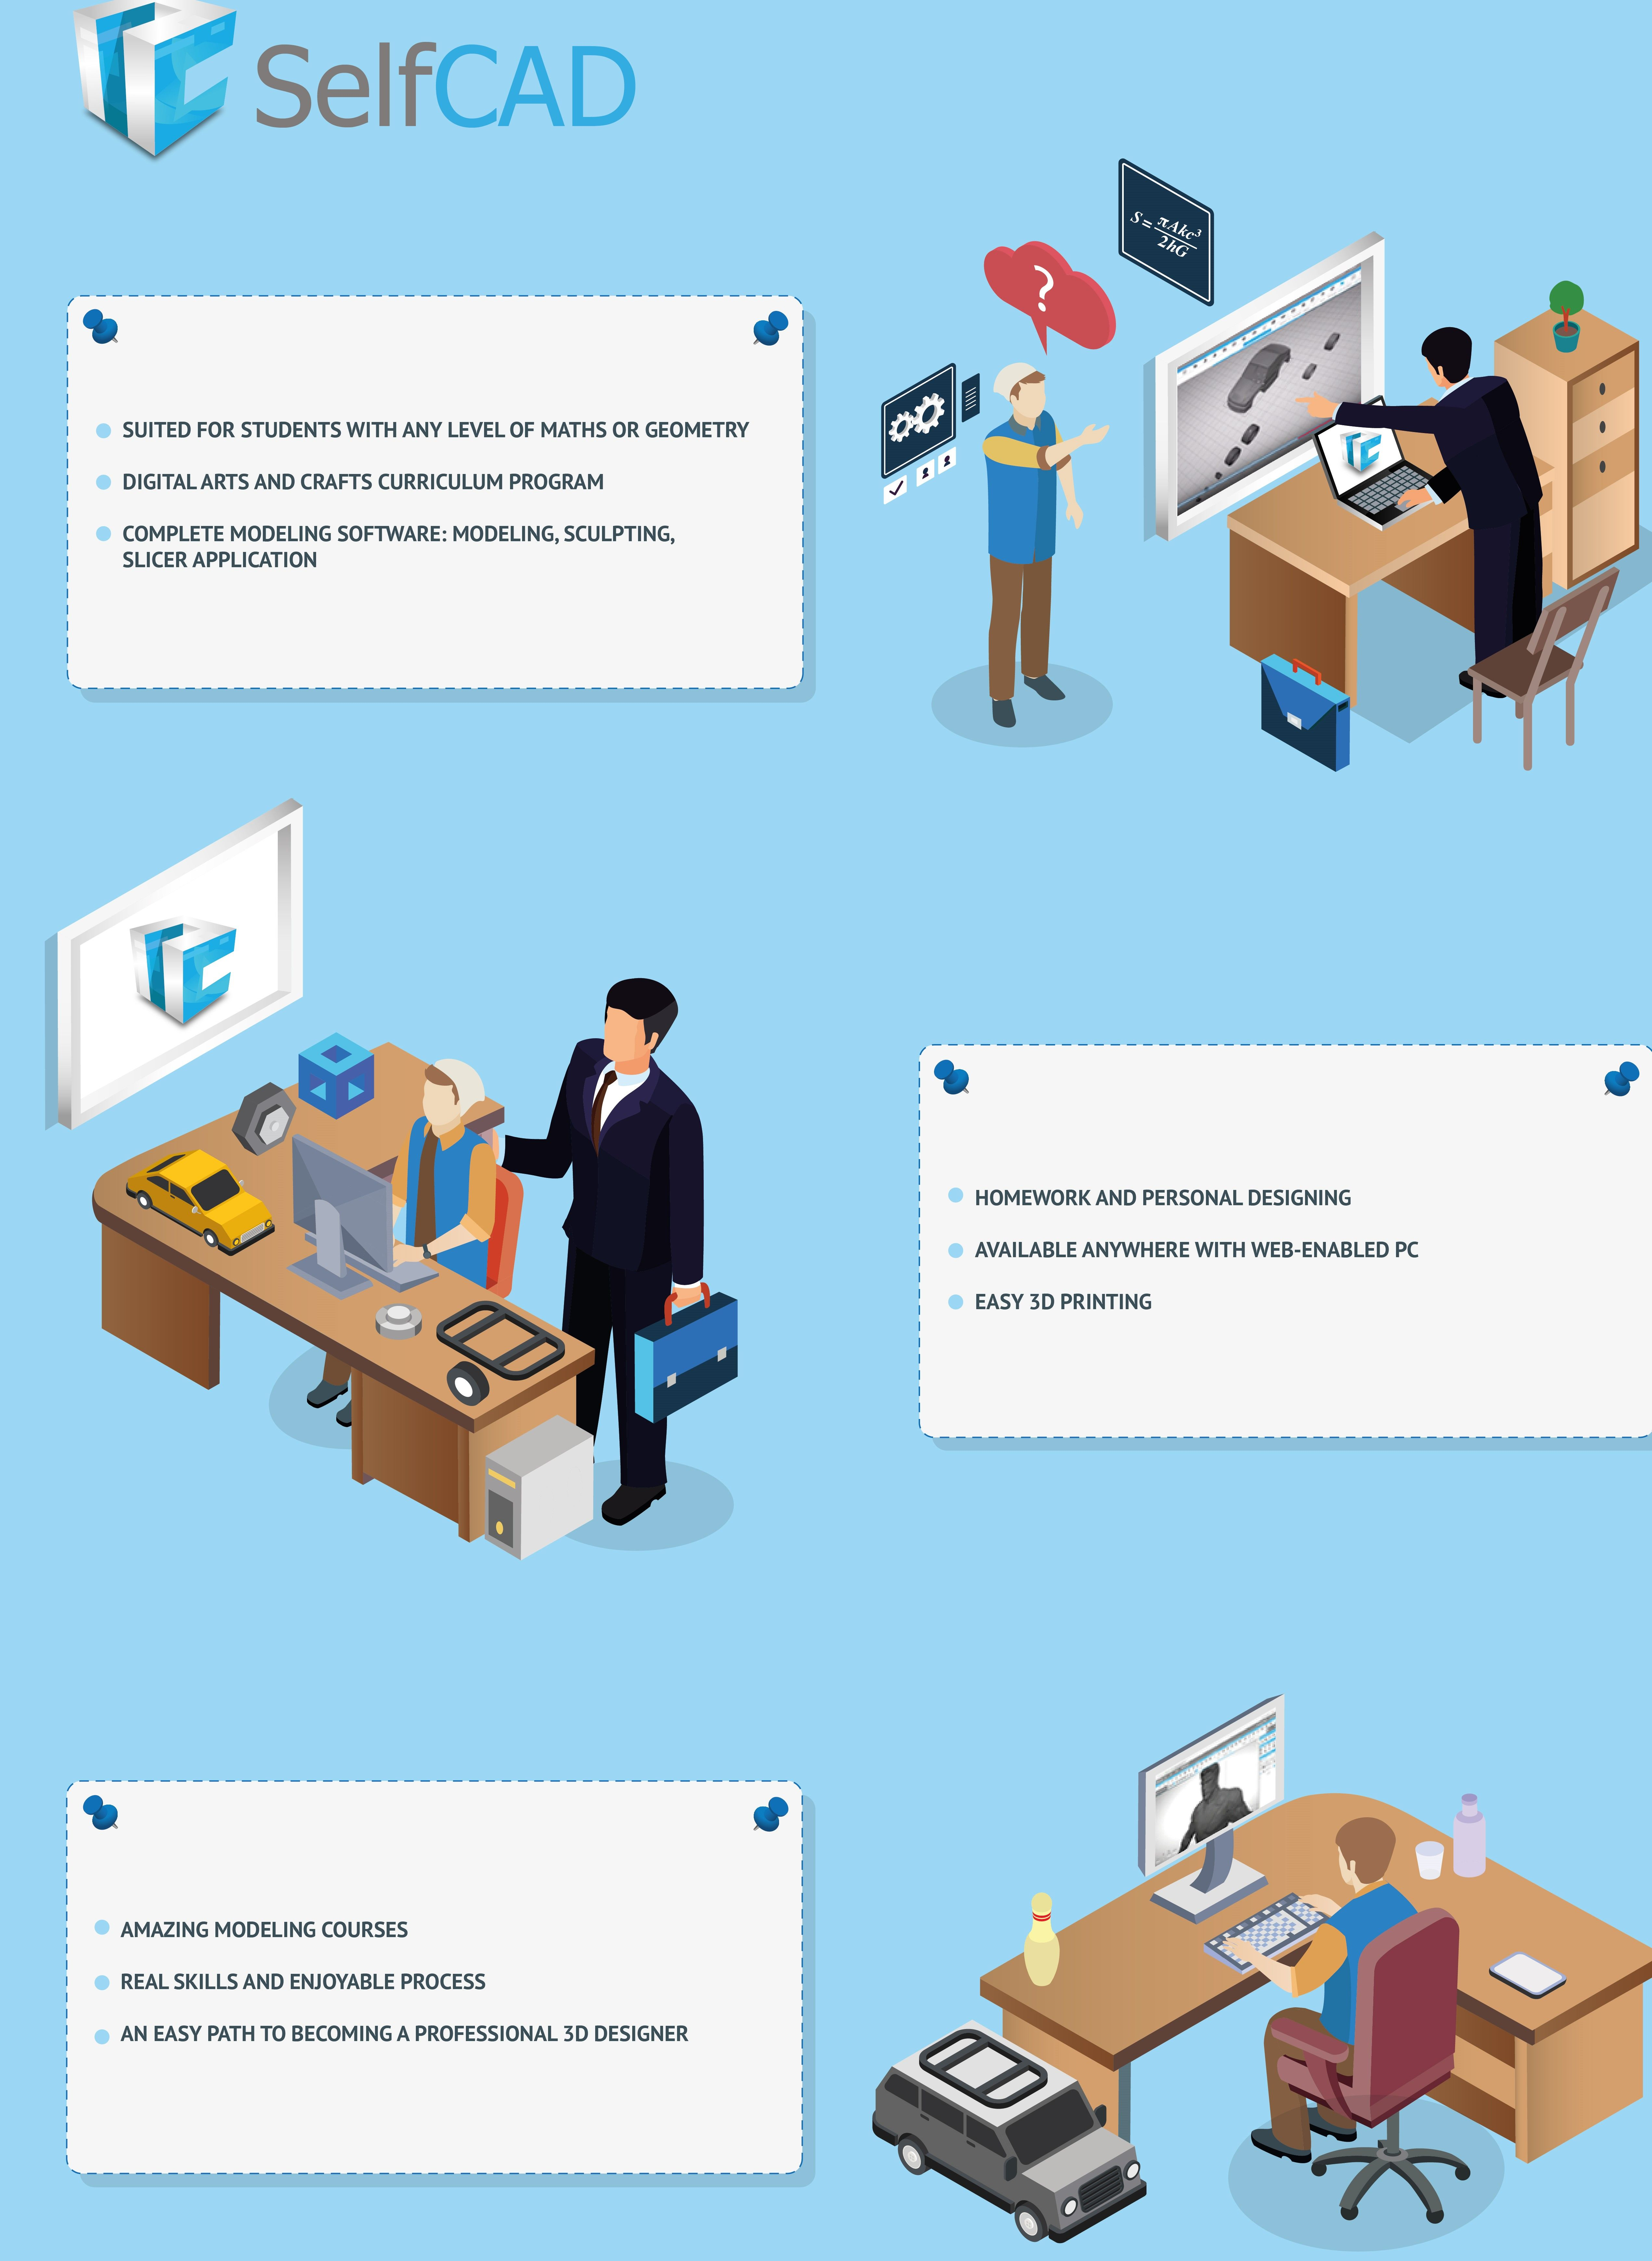 This Infographic Gives A Description Of Selfcad Software Selfcad Is A Browser Based 3d Modeling And Sculpting Software That Software Design Software 3d Model